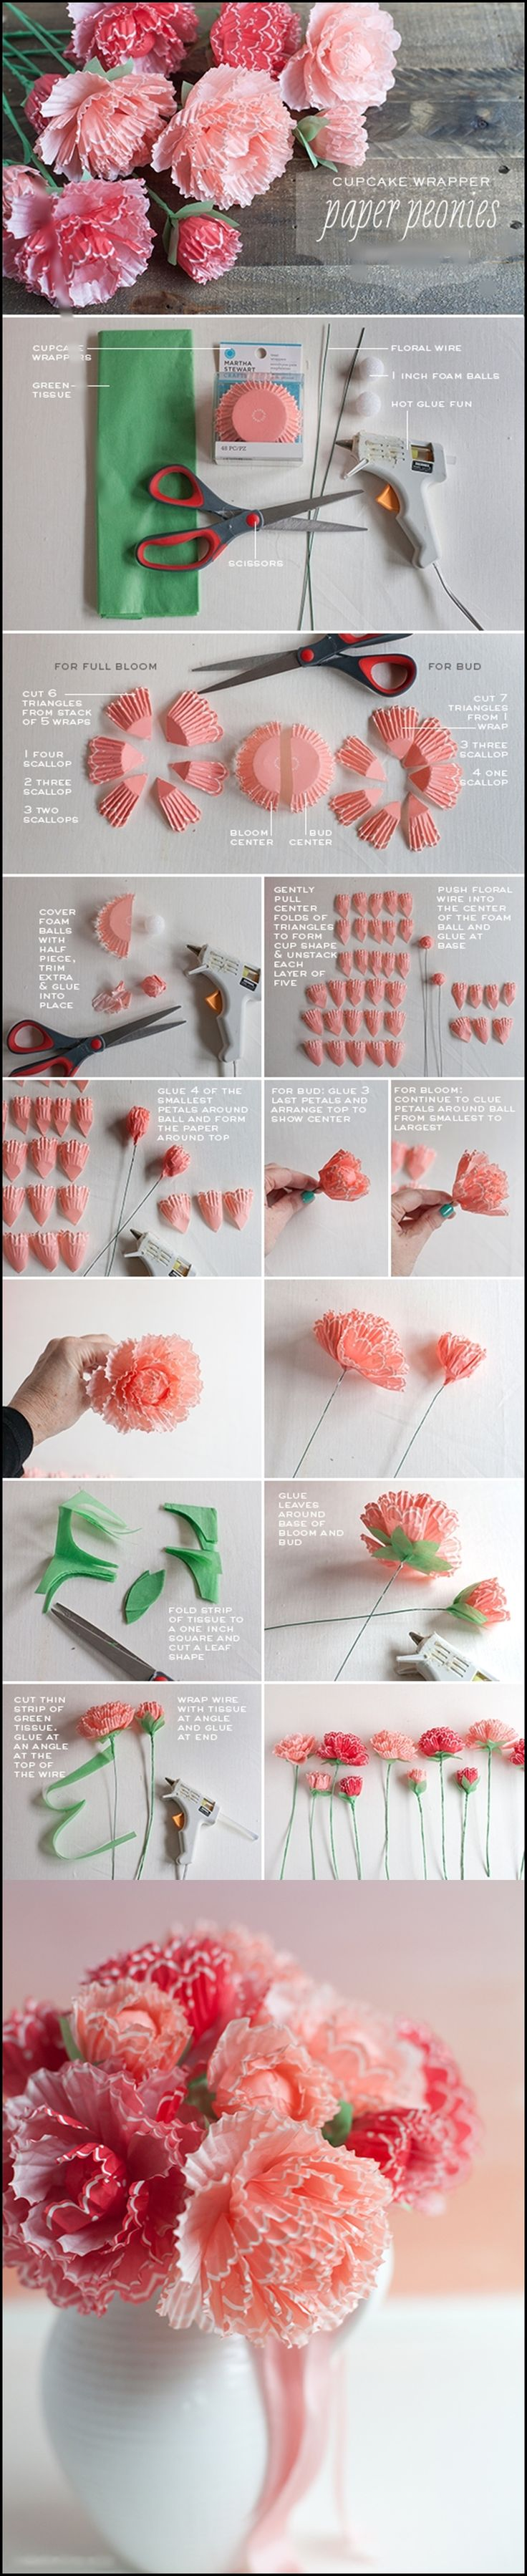 30 best DIY and décor images on Pinterest | Creative ideas ...